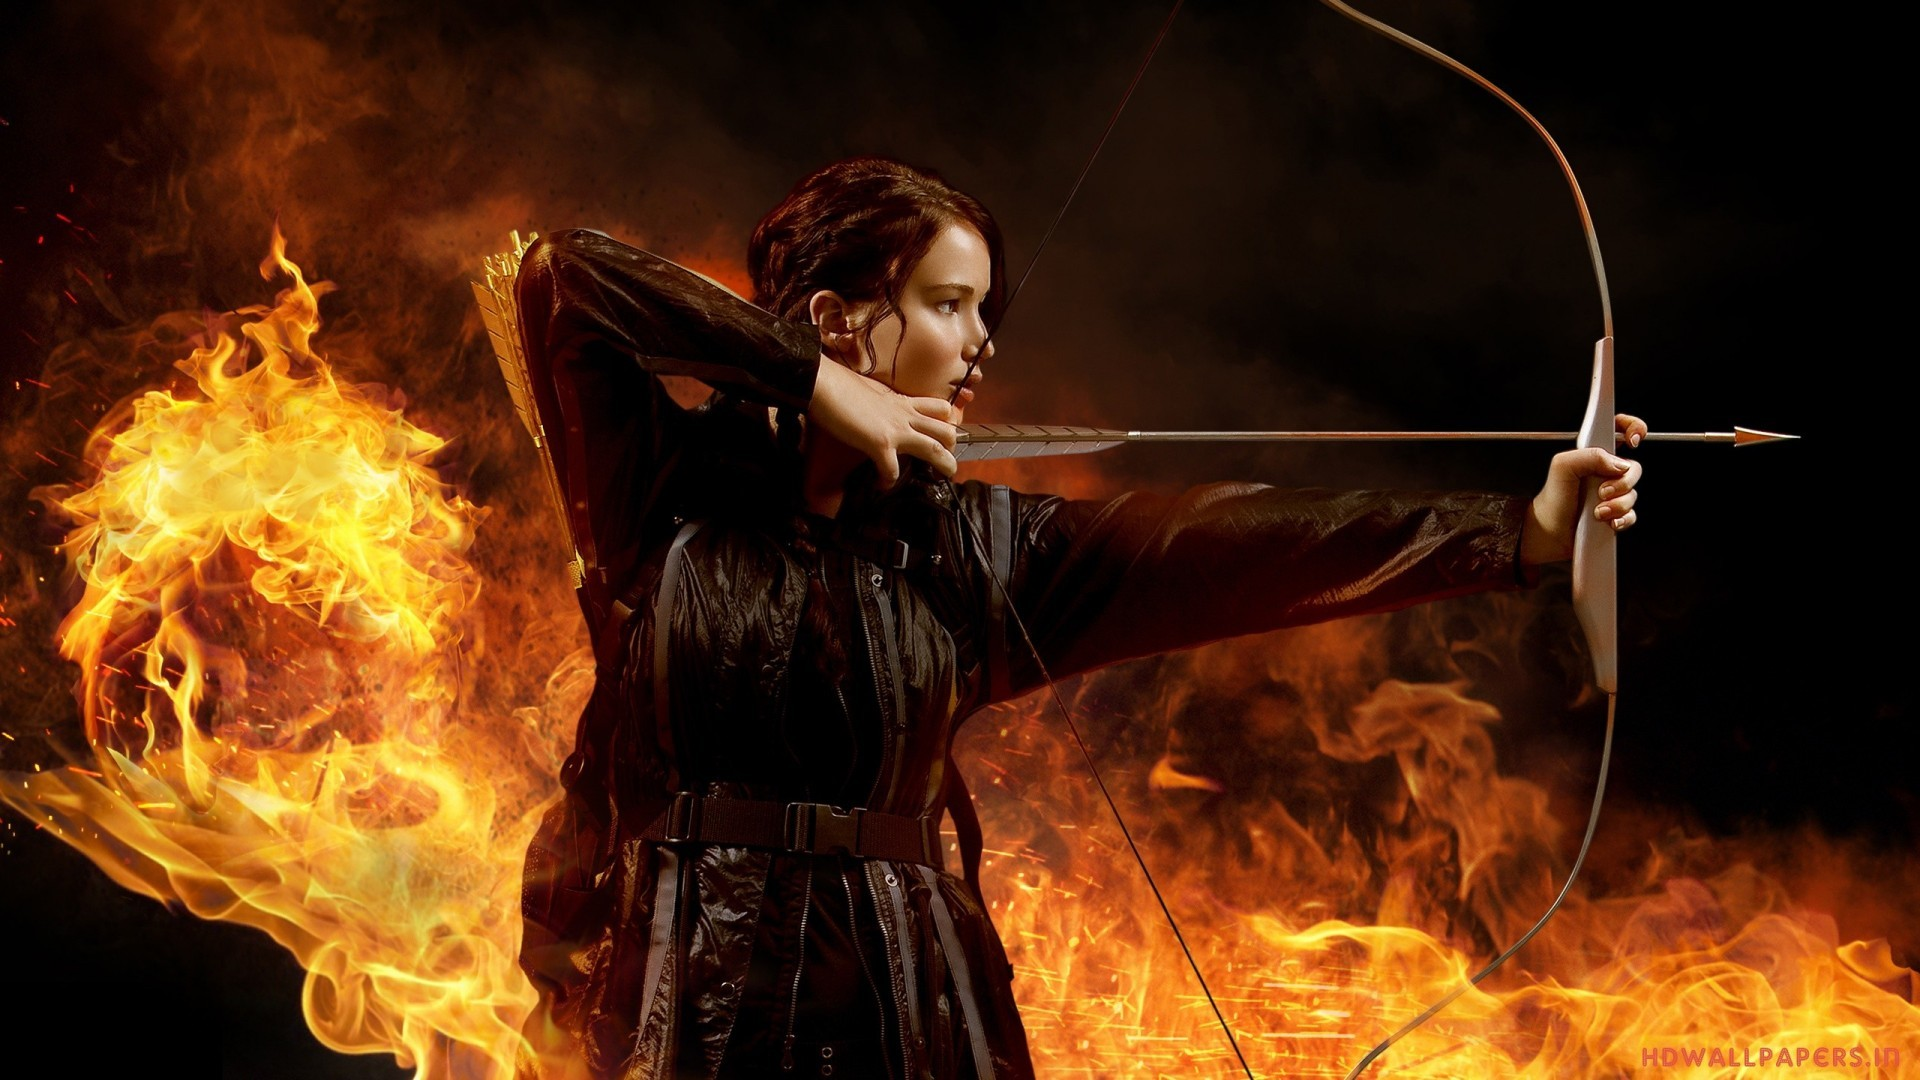 … hunger games bow and arrow hd wallpapers …